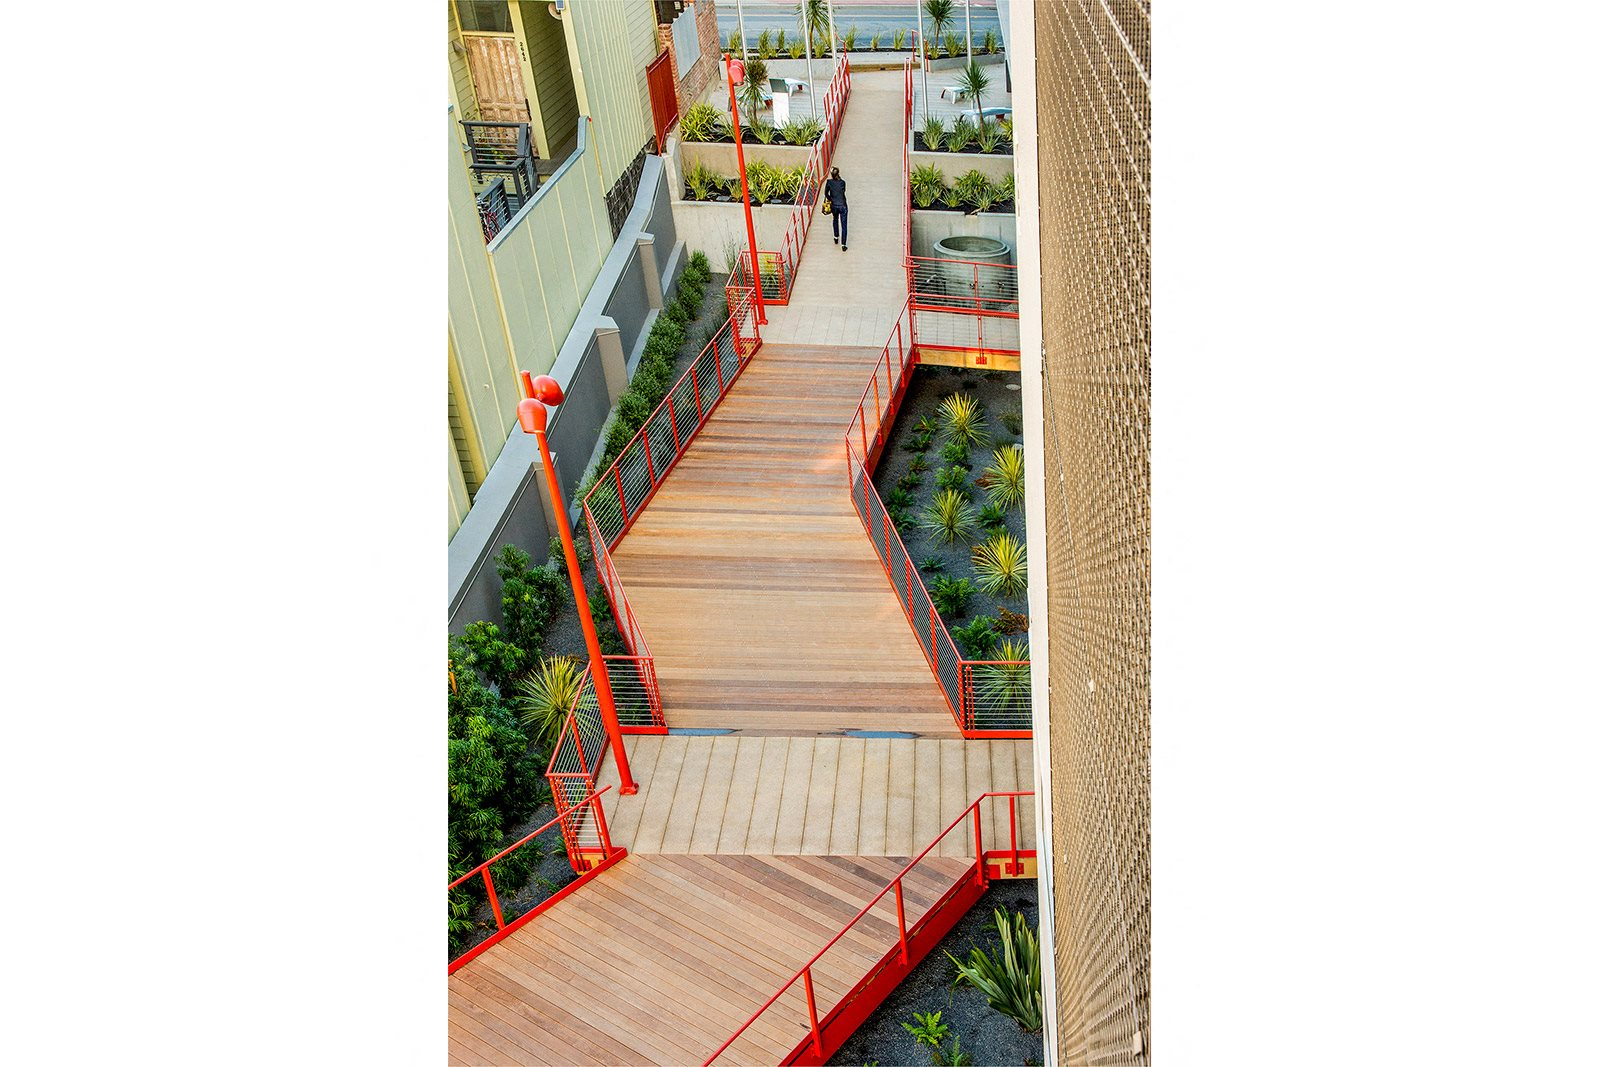 Amenities-The outdoor boardwalk is perfect for an afternoon stroll